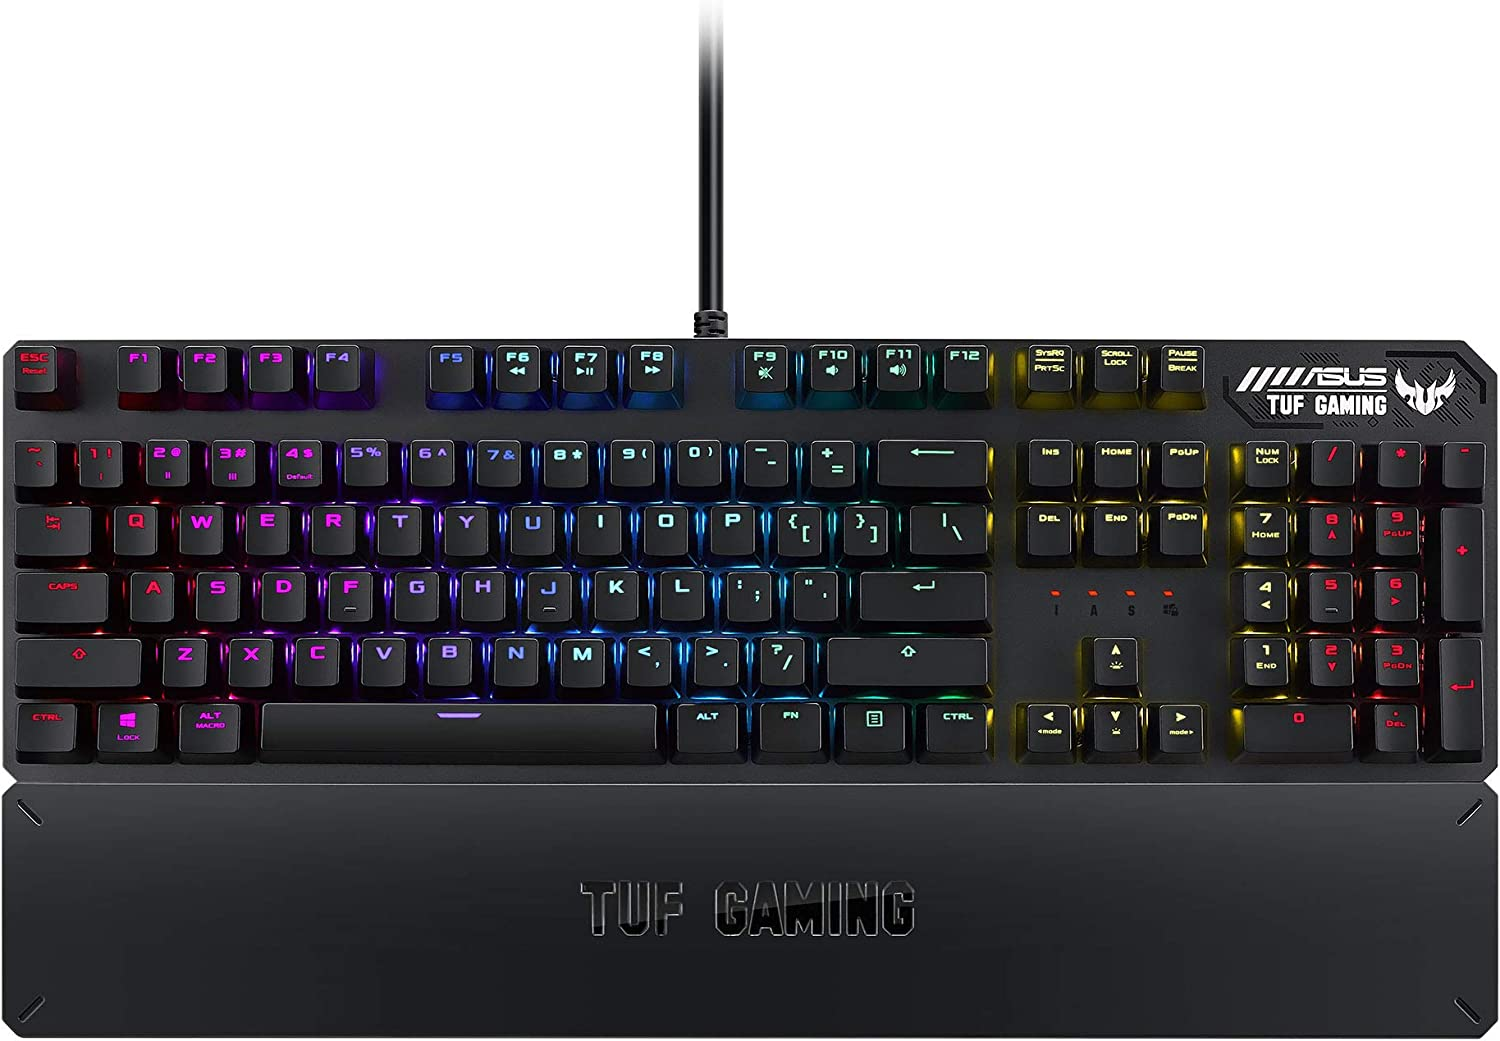 ASUS Mechanical PC Gaming Keyboard for PC - TUF K3 | Programmable Onboard Memory | Dedicated Media Controls, Aura Sync RGB Lighting | Detachable Magnetic Wrist Rest | Highly Durable | Black